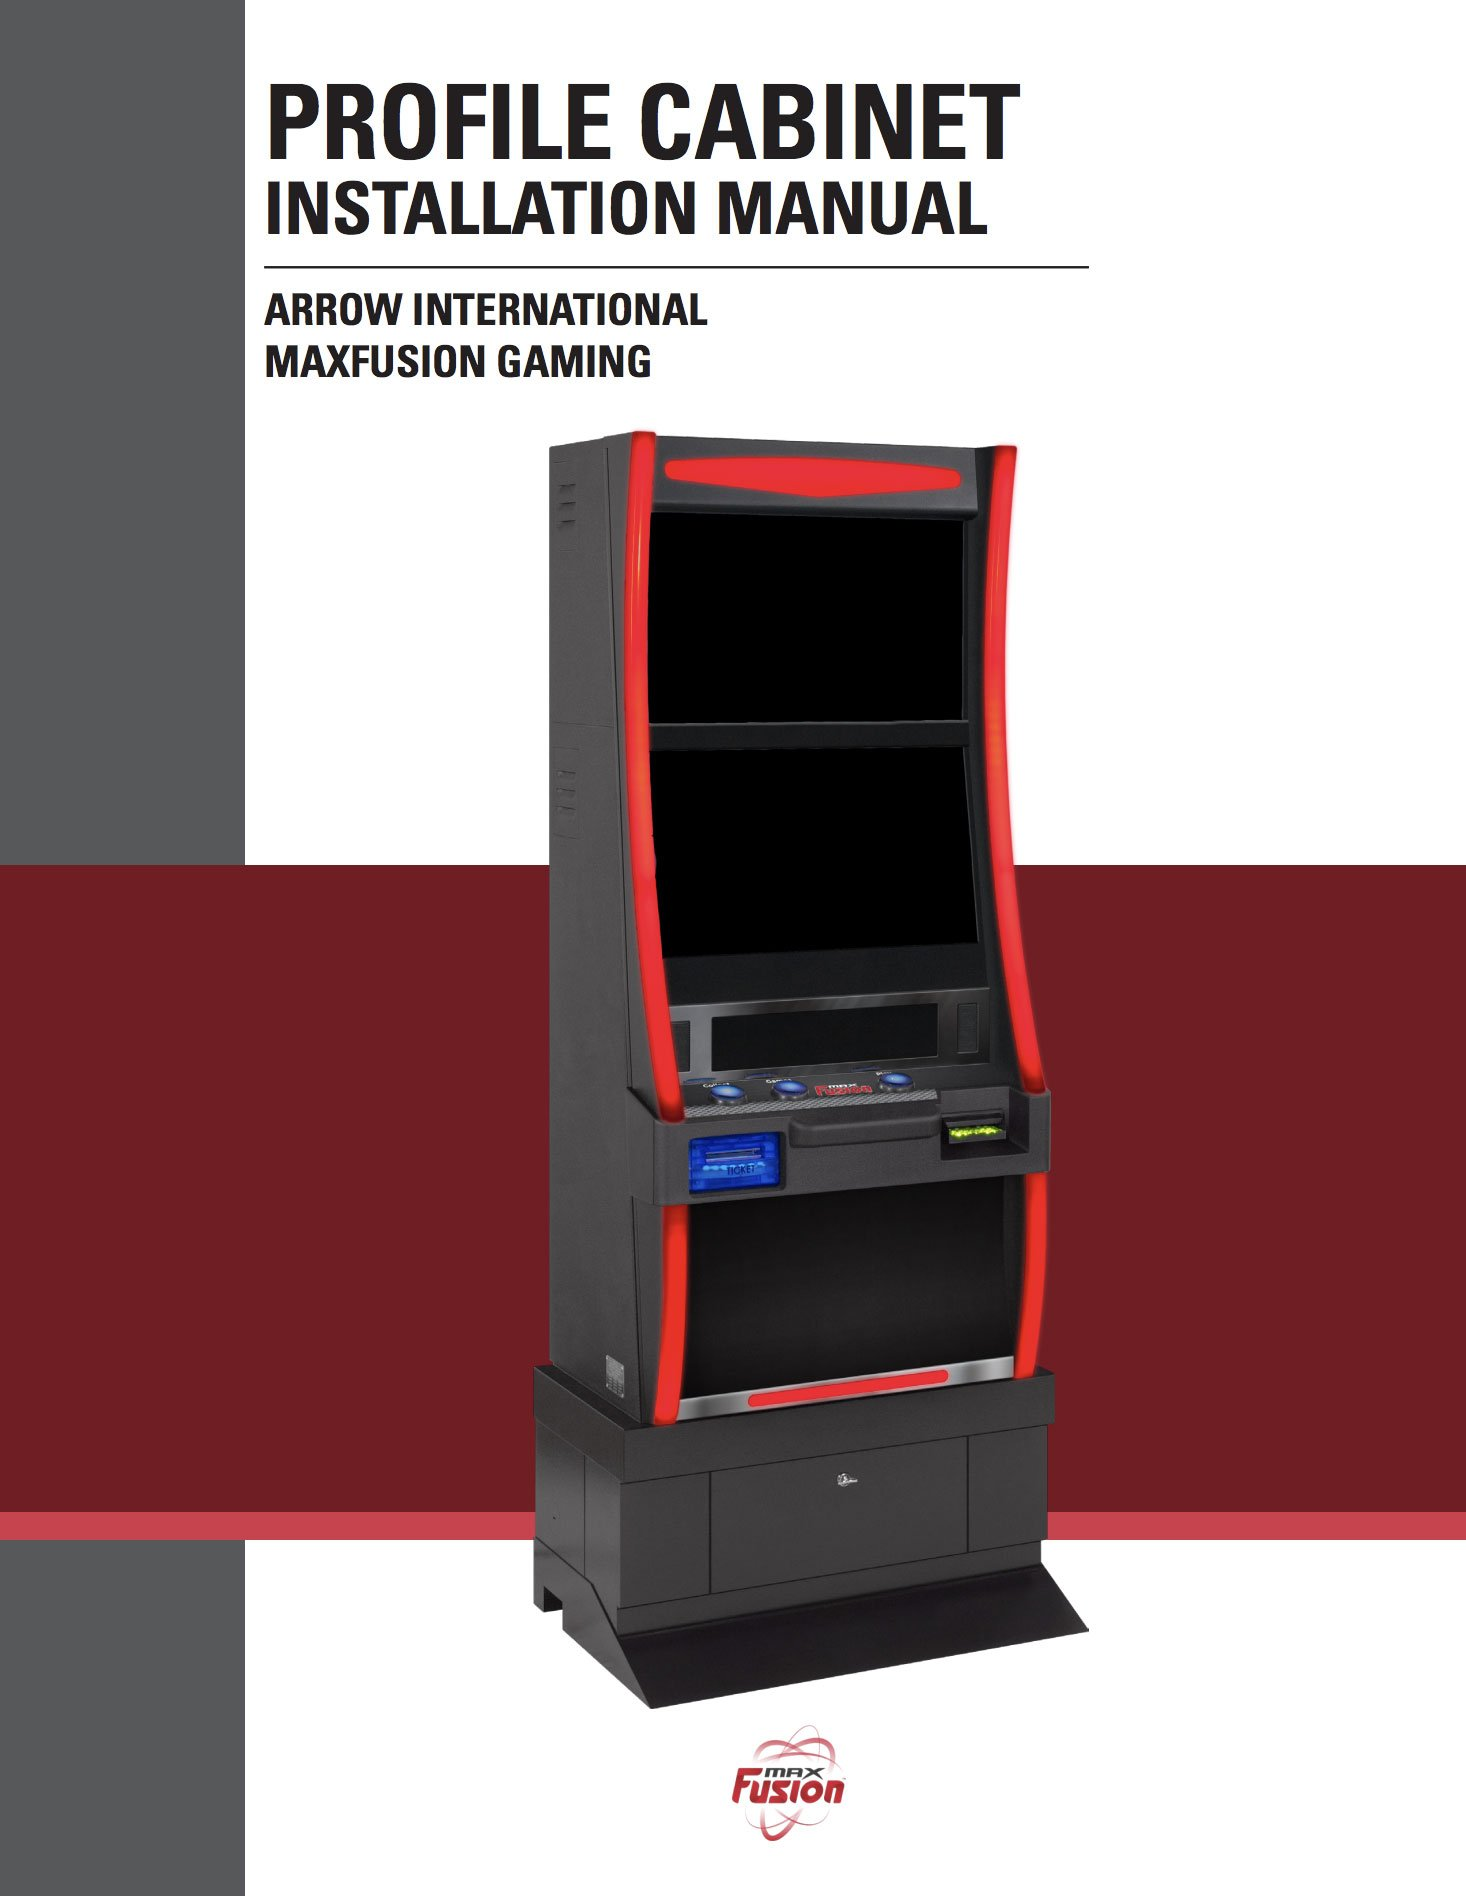 MaxFusion Profile Cabinet Manual Equipment Manuals